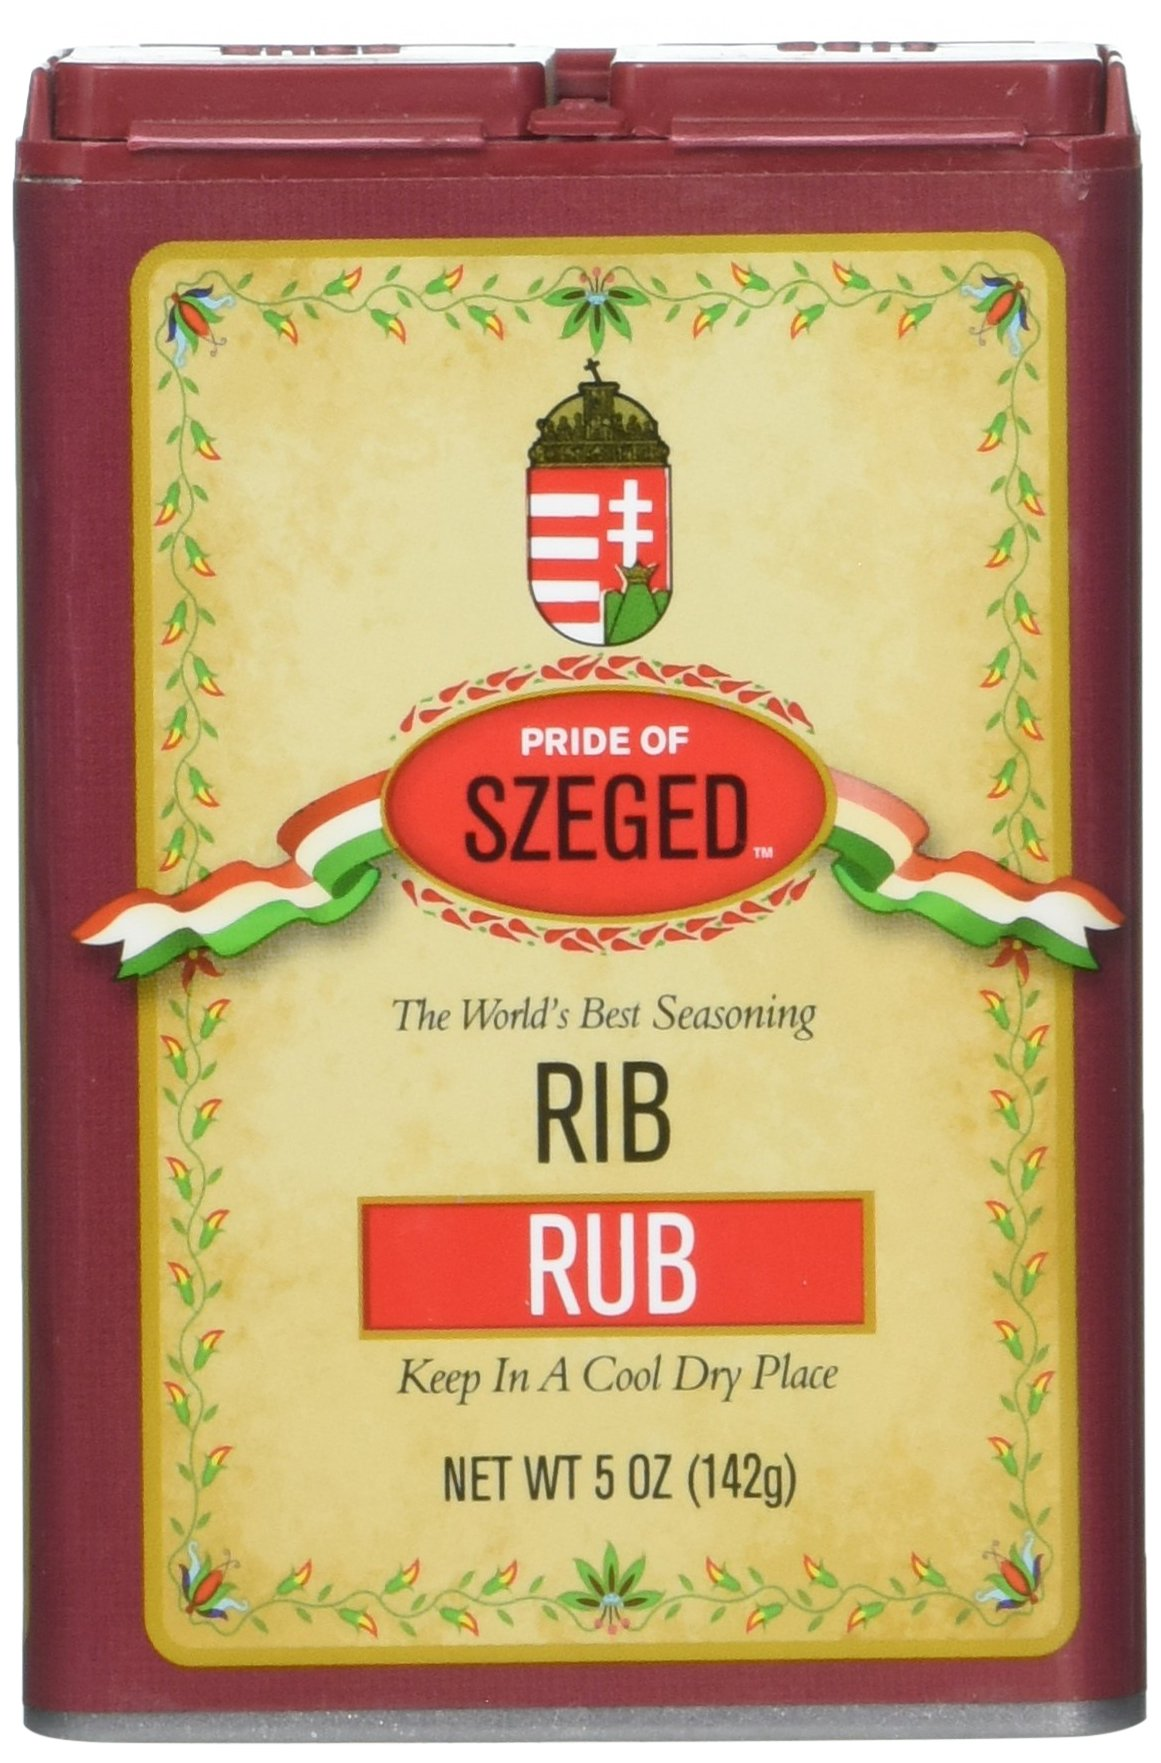 Szeged Seasoning Rib Rub, 5 Ounce Tin